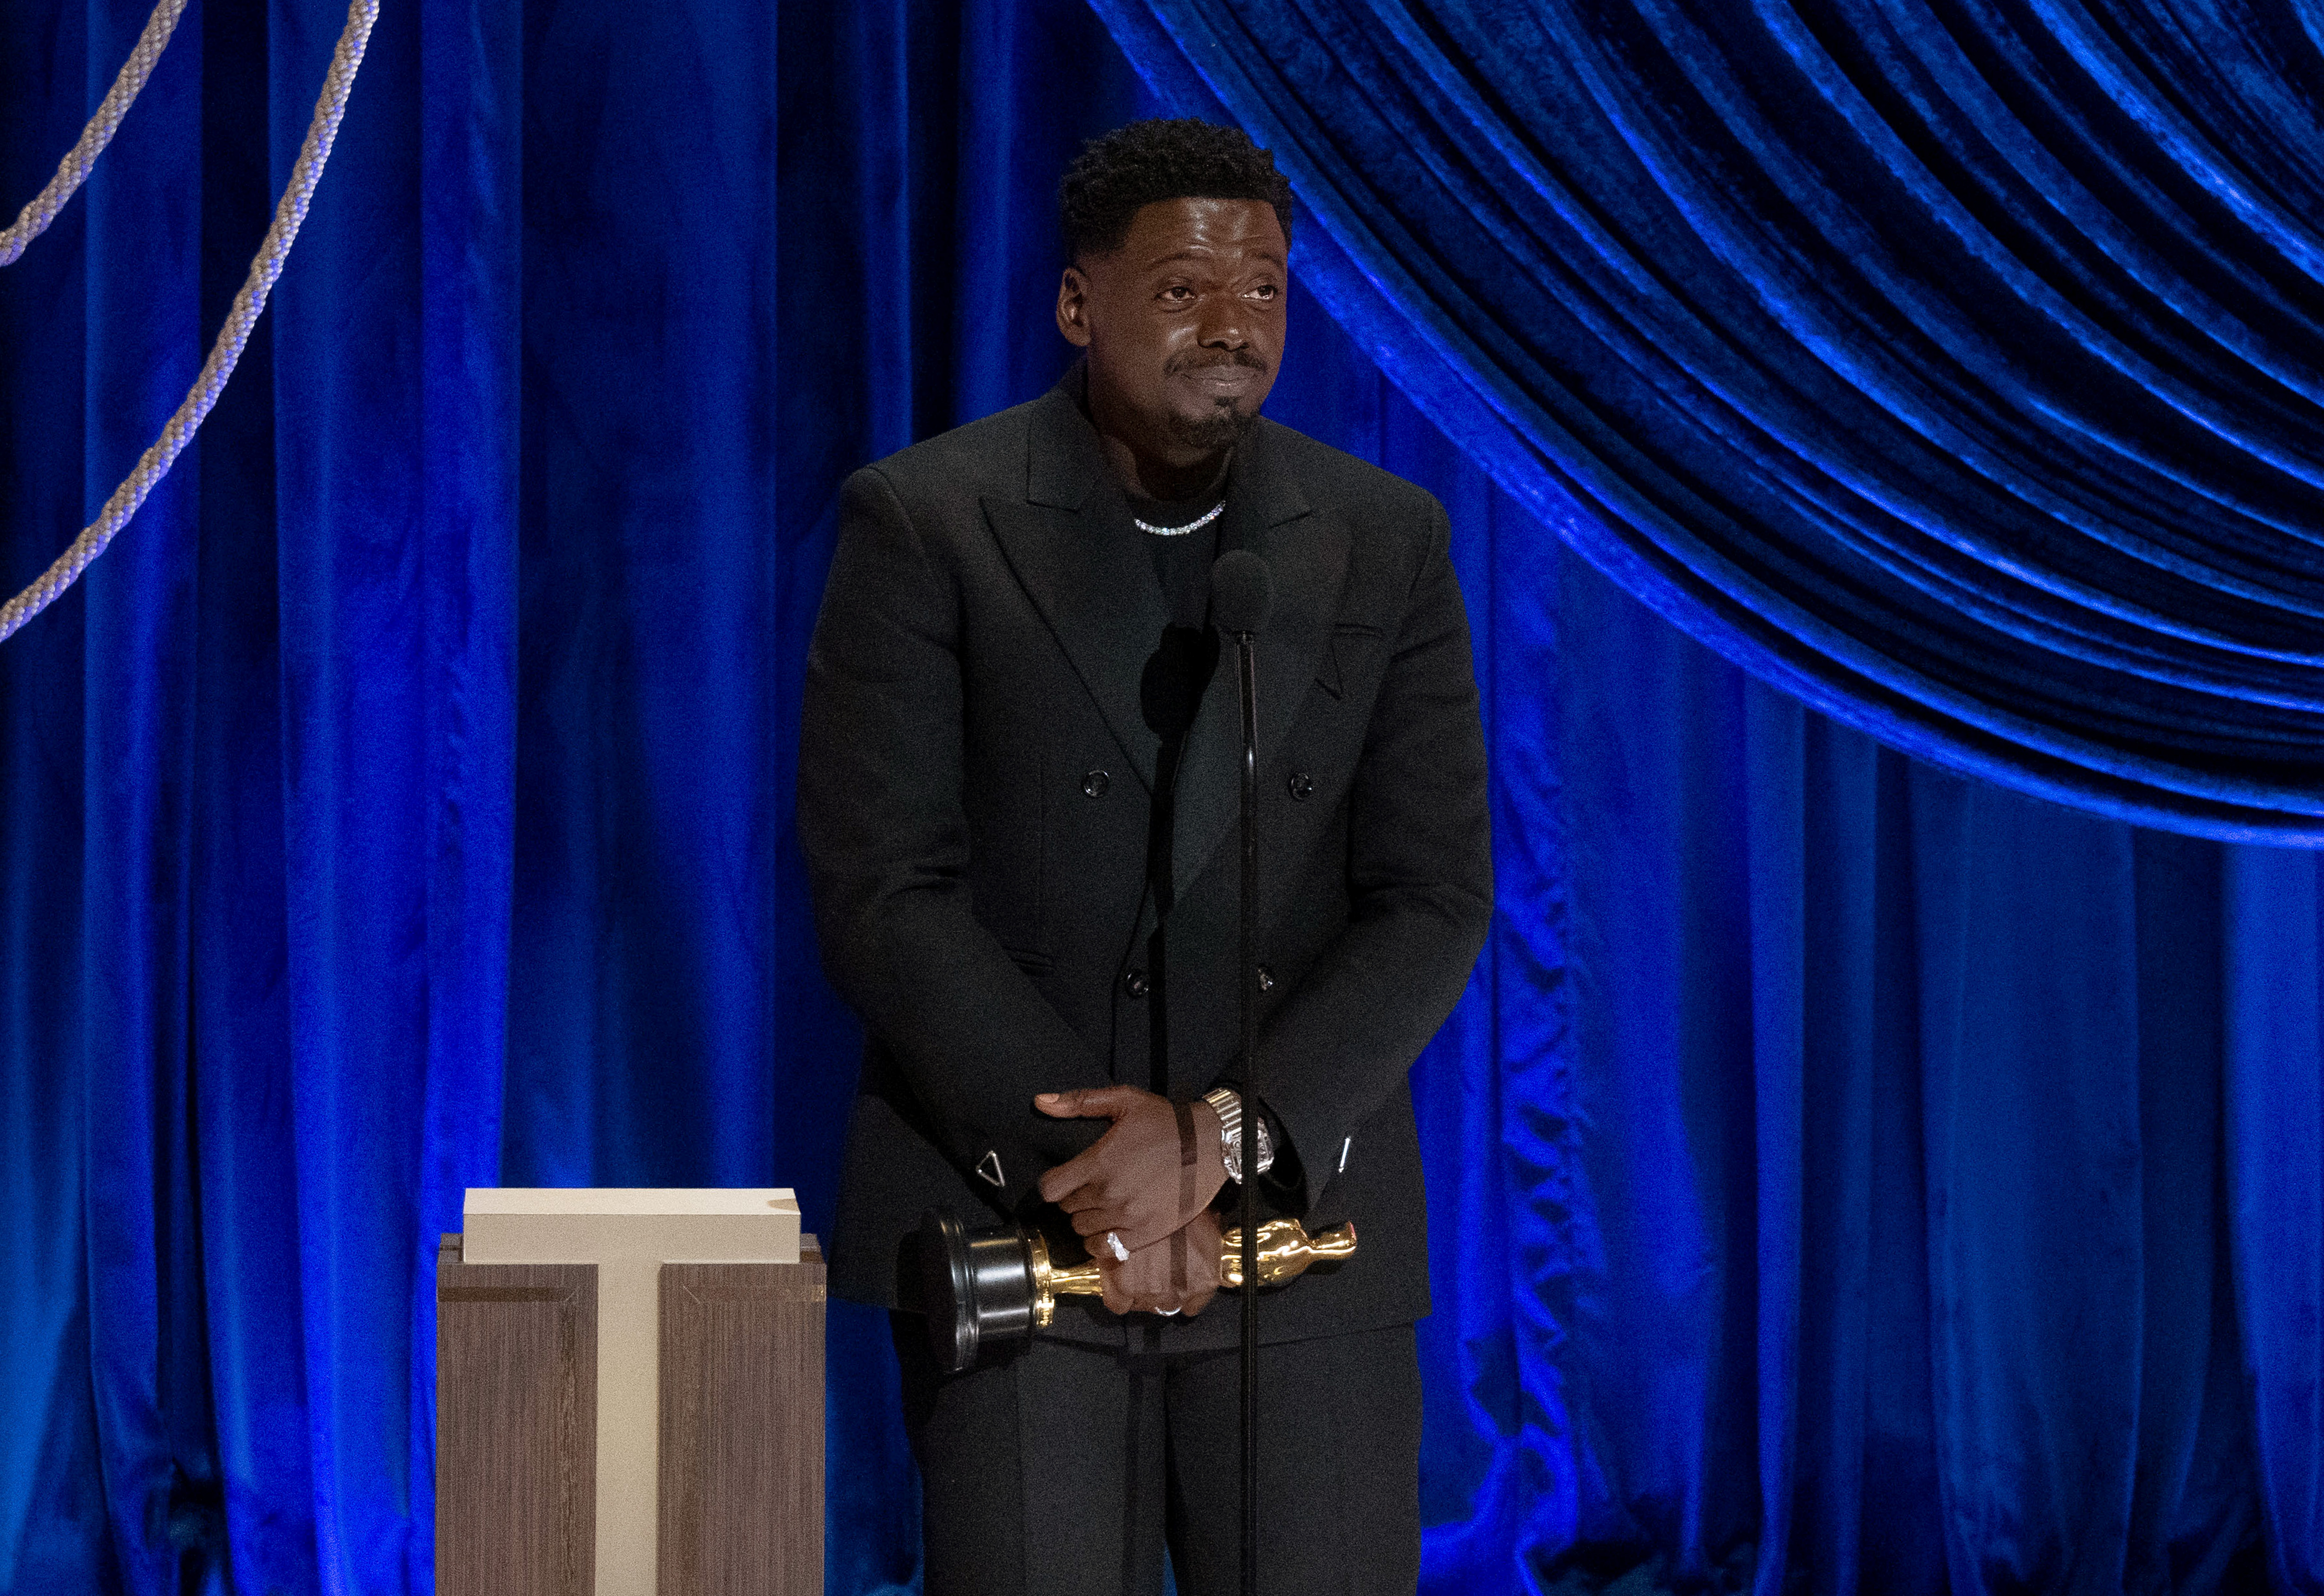 Daniel Kaluuya accepts the Oscar for Actor in a Supporting Role for 'Judas and the Black Messiah' during the 93rd Annual Academy Awards on April 25, 2021